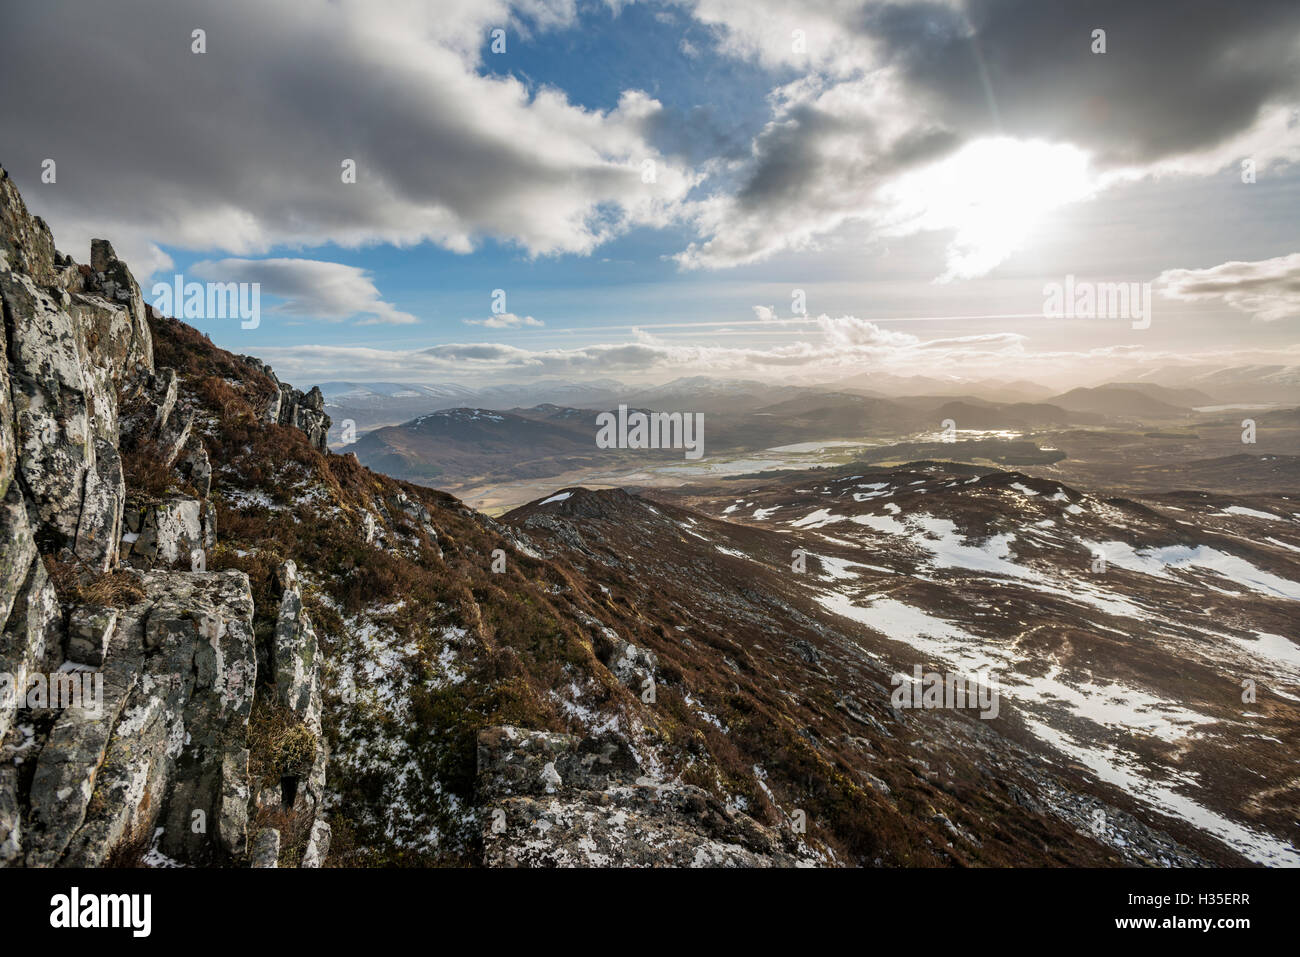 A view across the Cairngorms from the top of Creag Dubh near Newtonmore, Cairngorms National Park, Scotland, UK - Stock Image